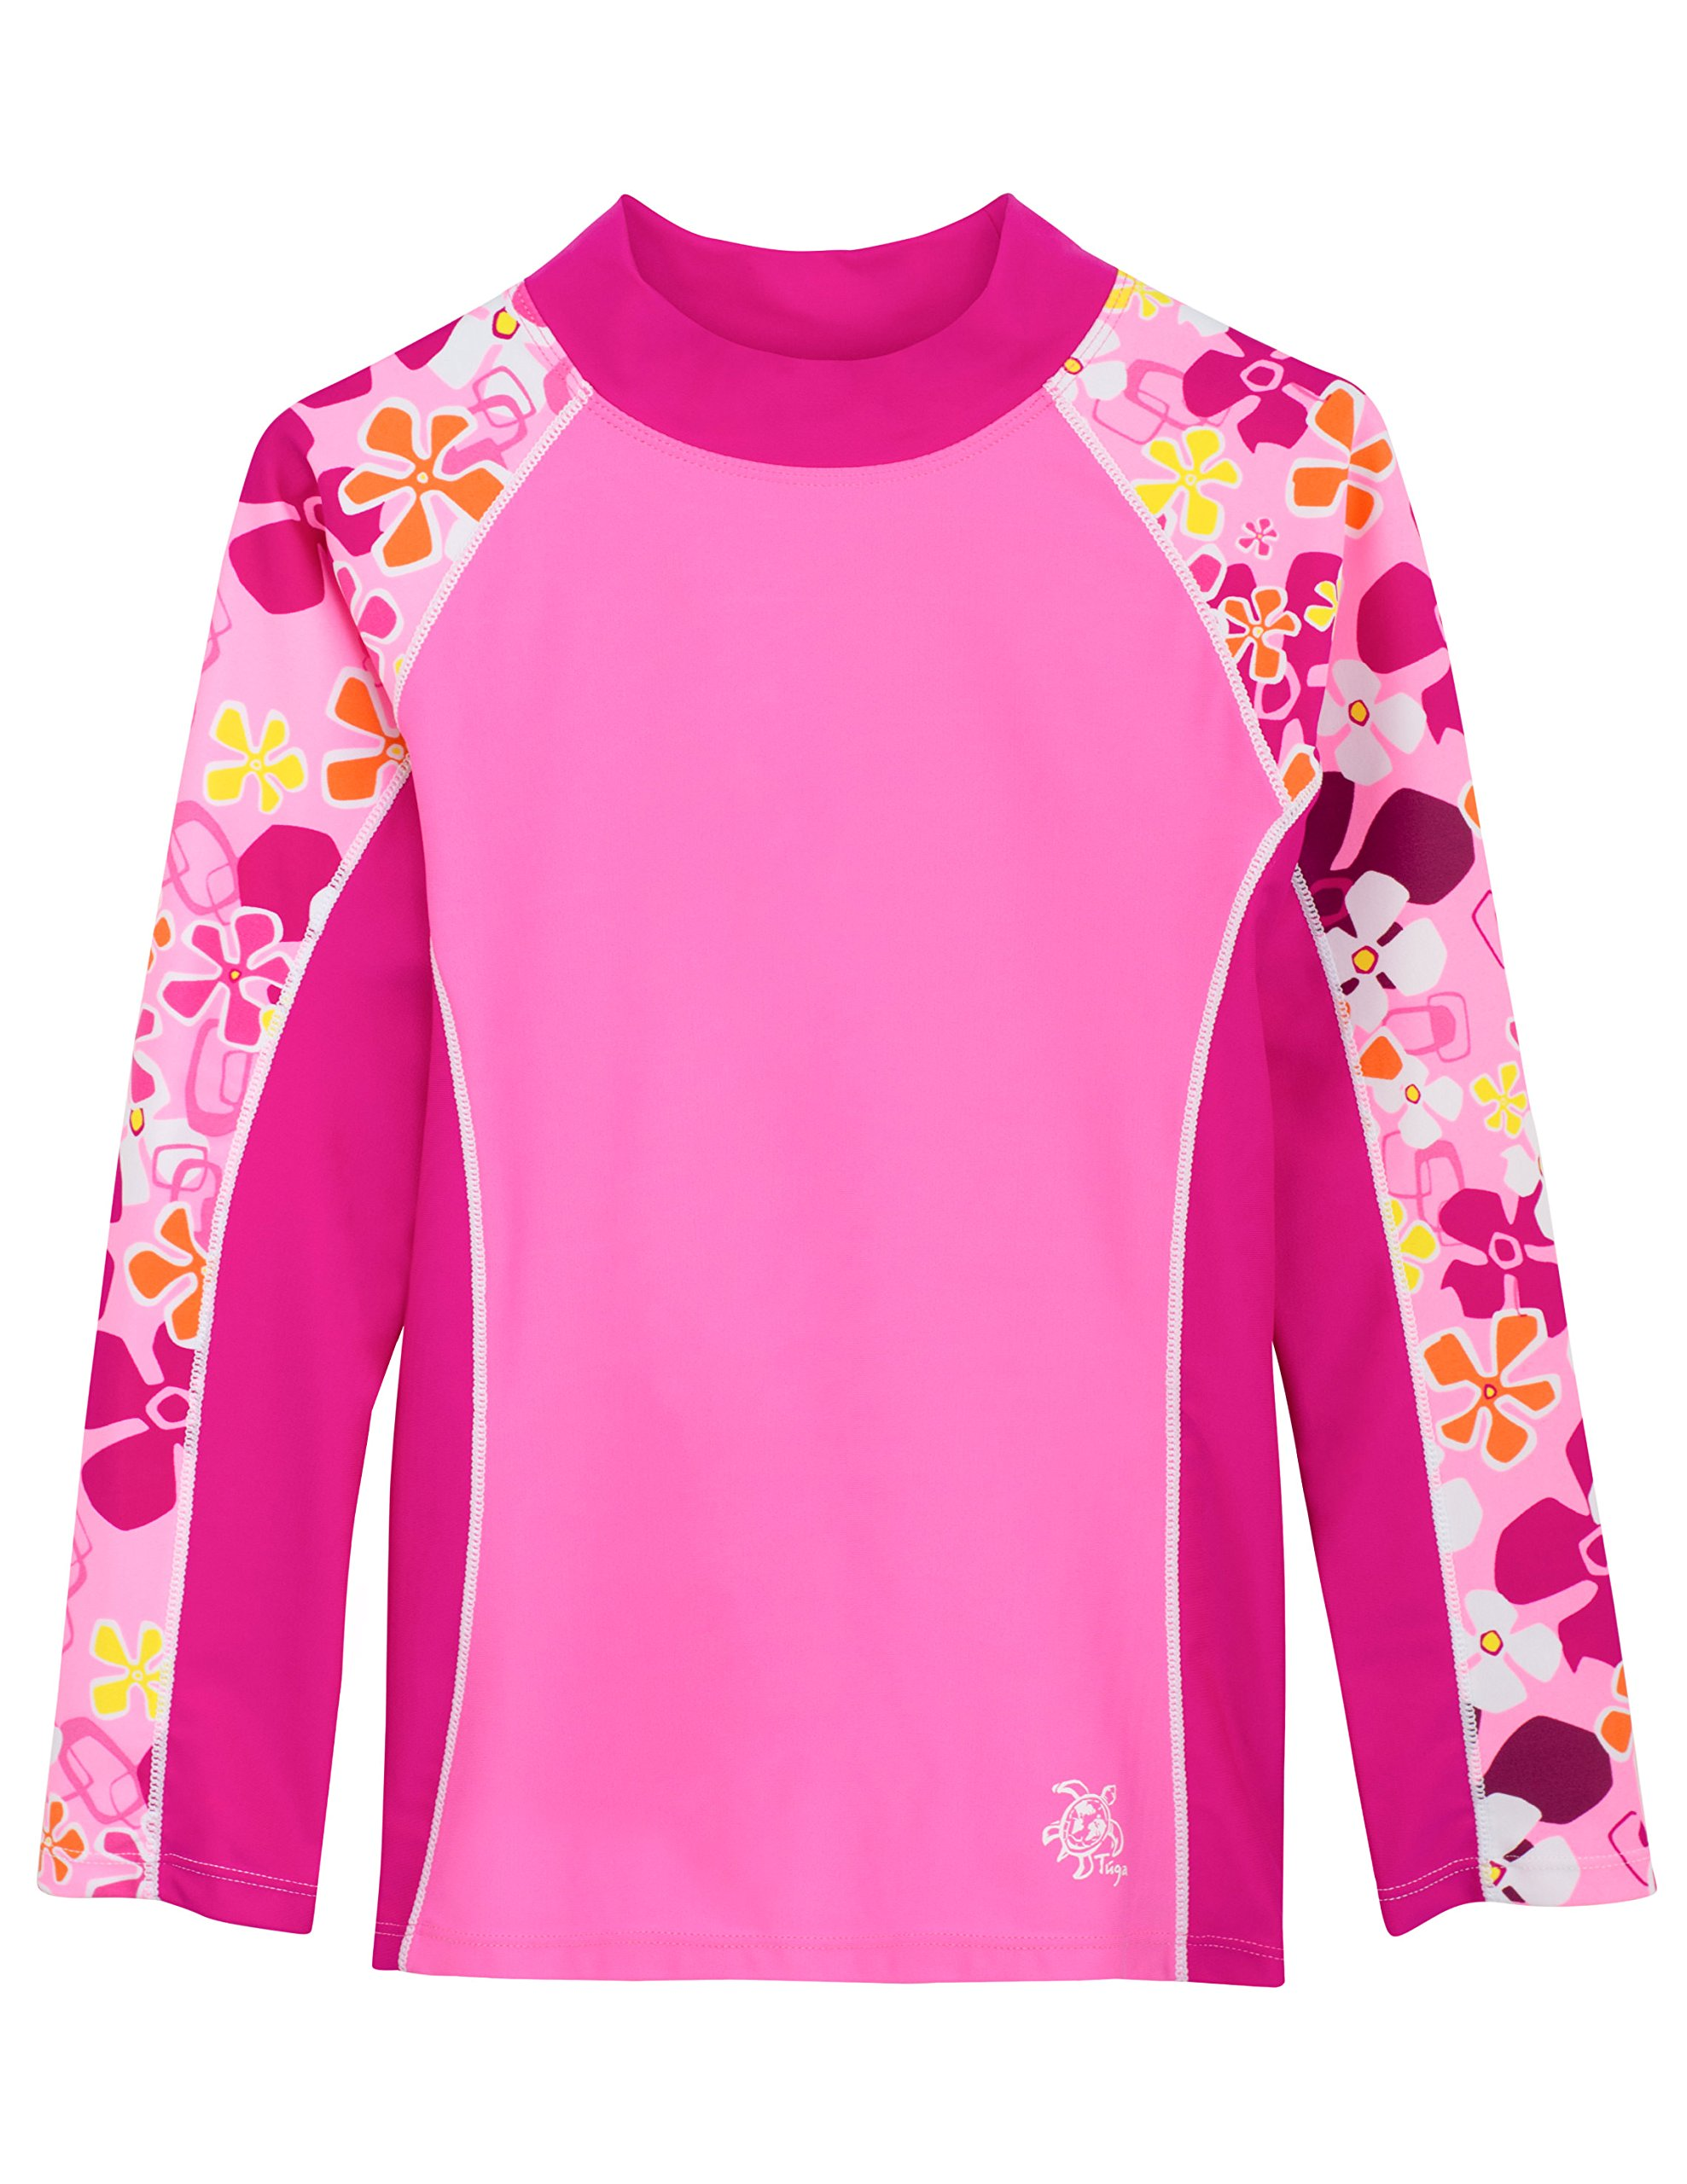 Protection Tuga Boys Two Piece Long Sleeve Swimsuit Set 2-14 Years UPF 50